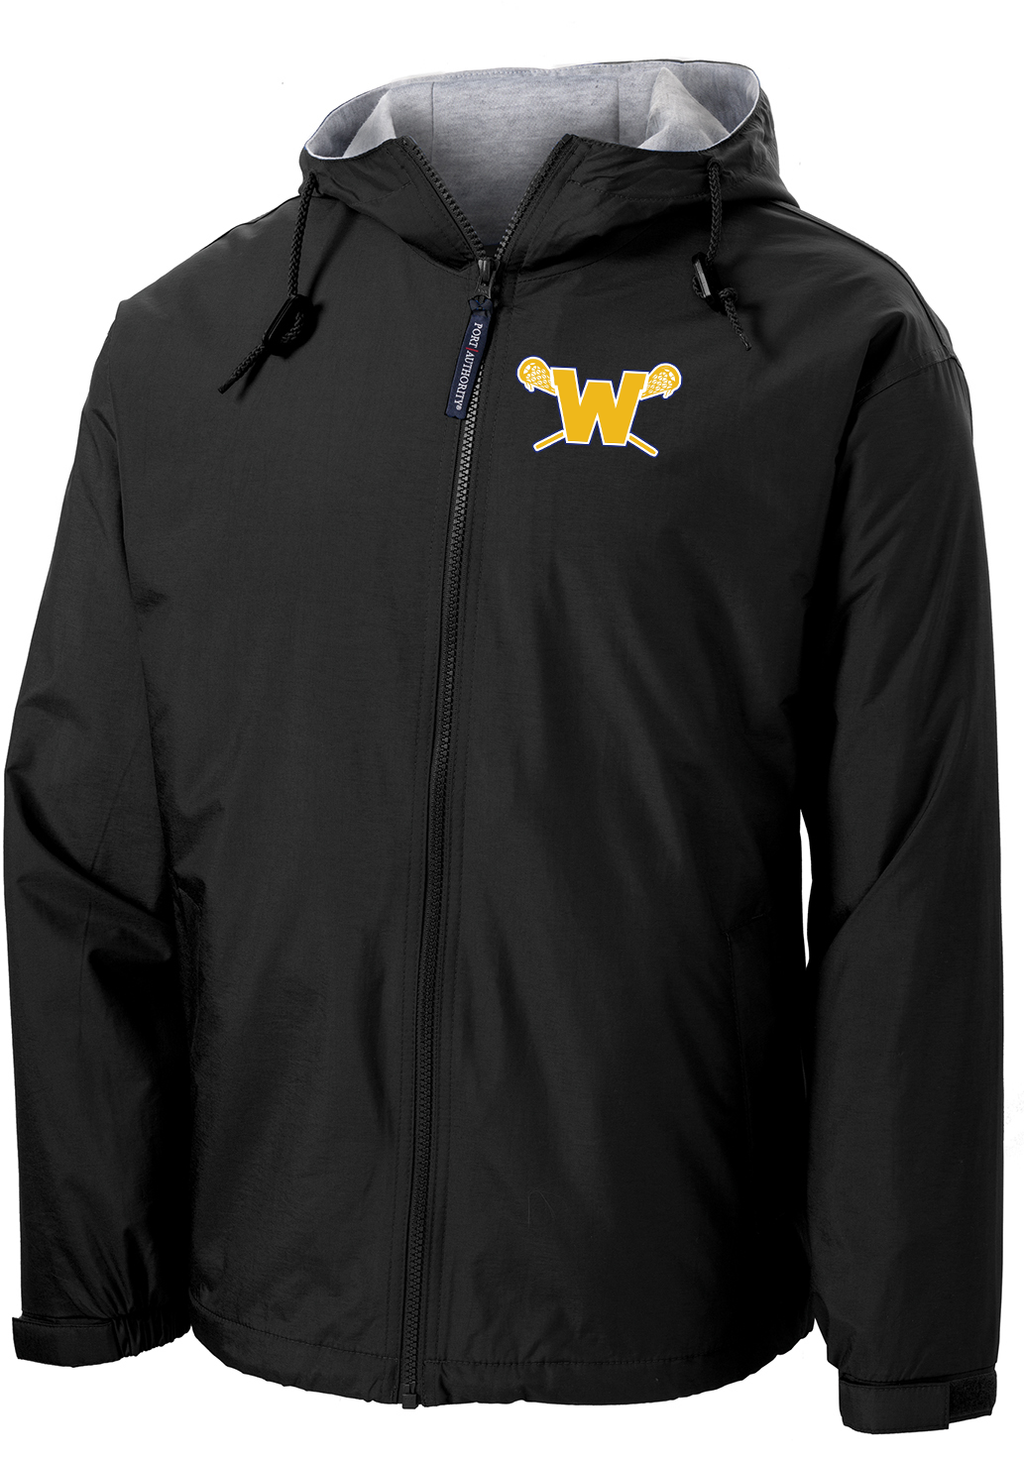 Webster Lacrosse Black Hooded Jacket